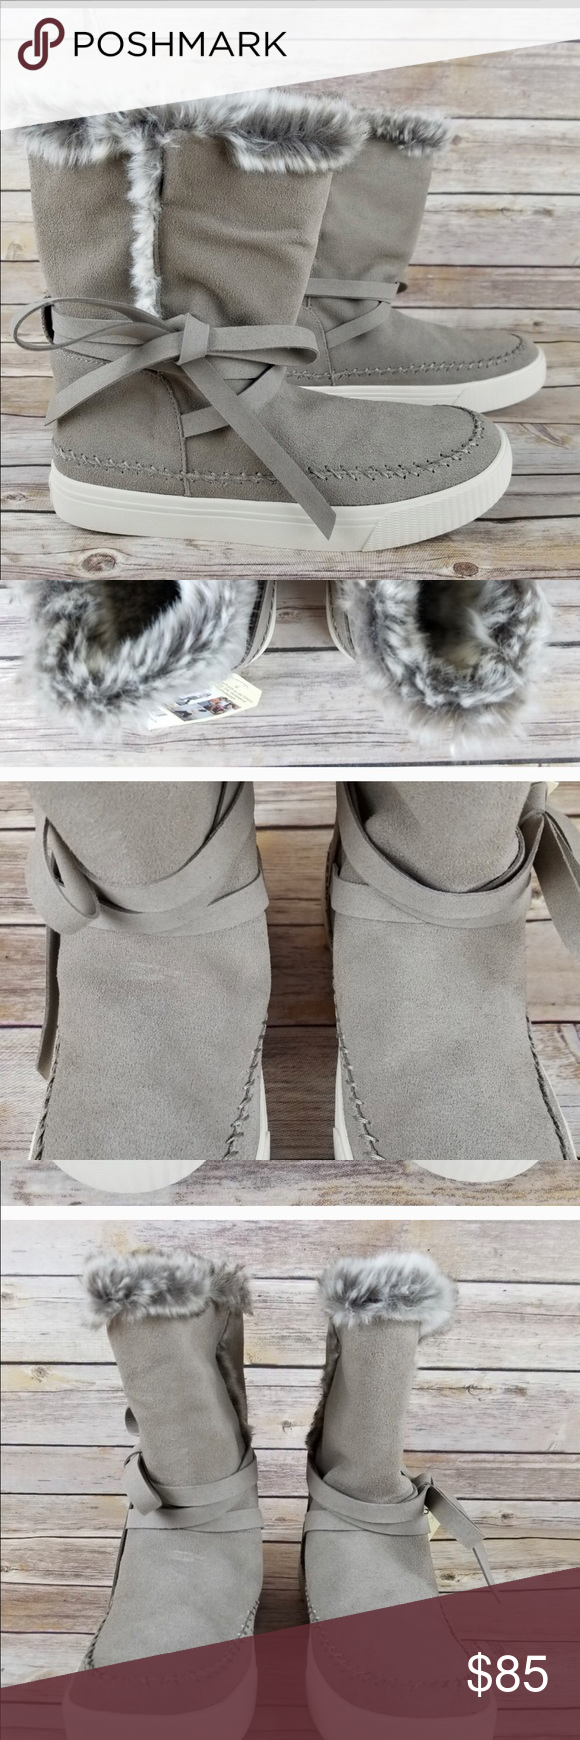 57665a61055 Toms boots 8.5 Toms 8.5 vista boots new with tags still on Toms Shoes Ankle  Boots   Booties